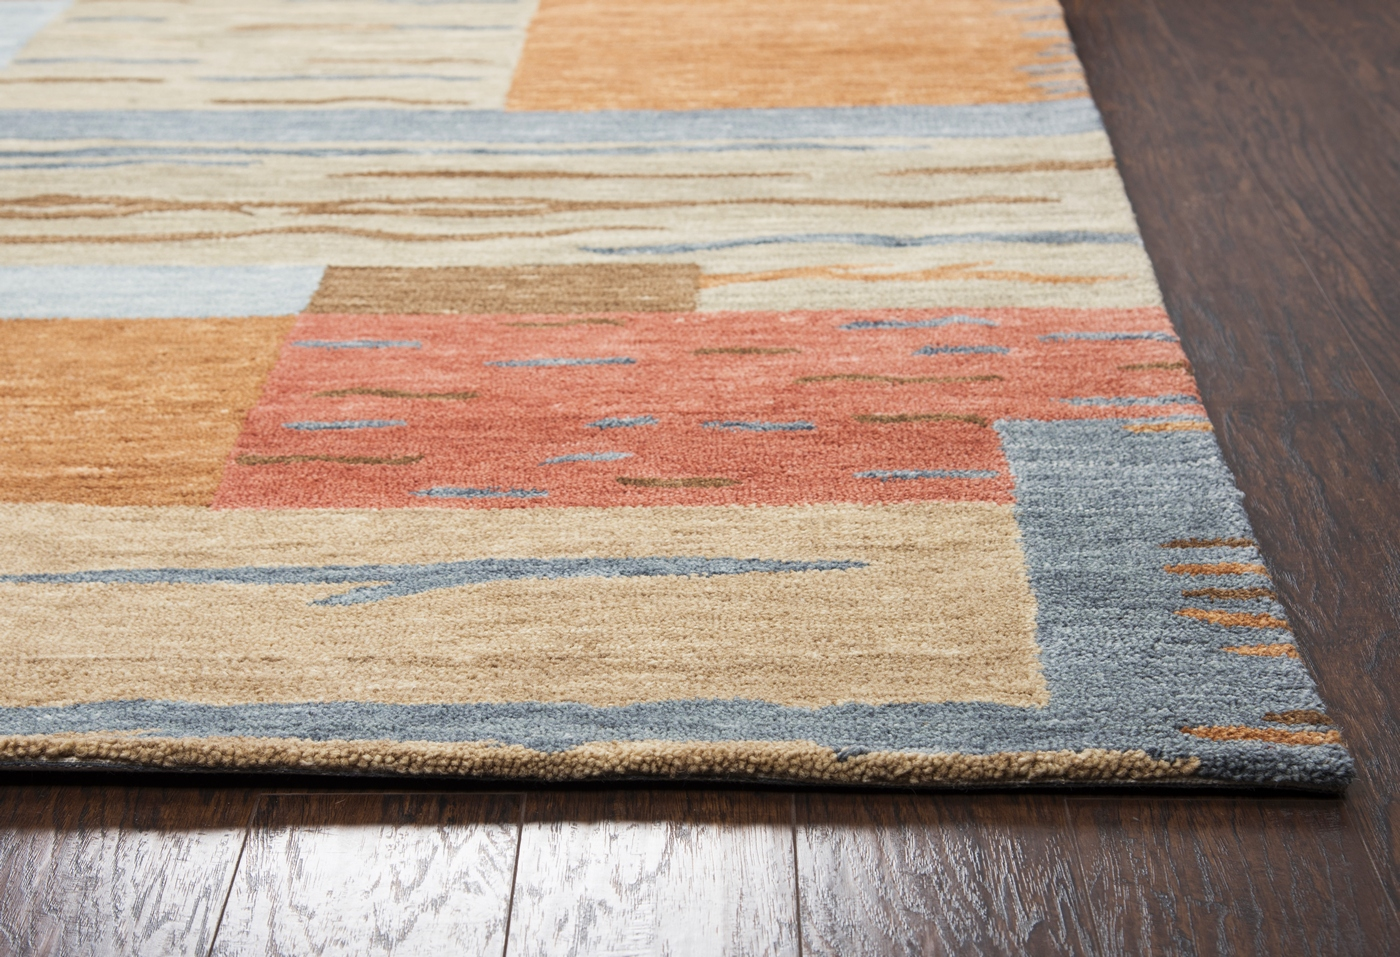 Leone Abstract Block Wool Area Rug In Gray Brown Red Blue